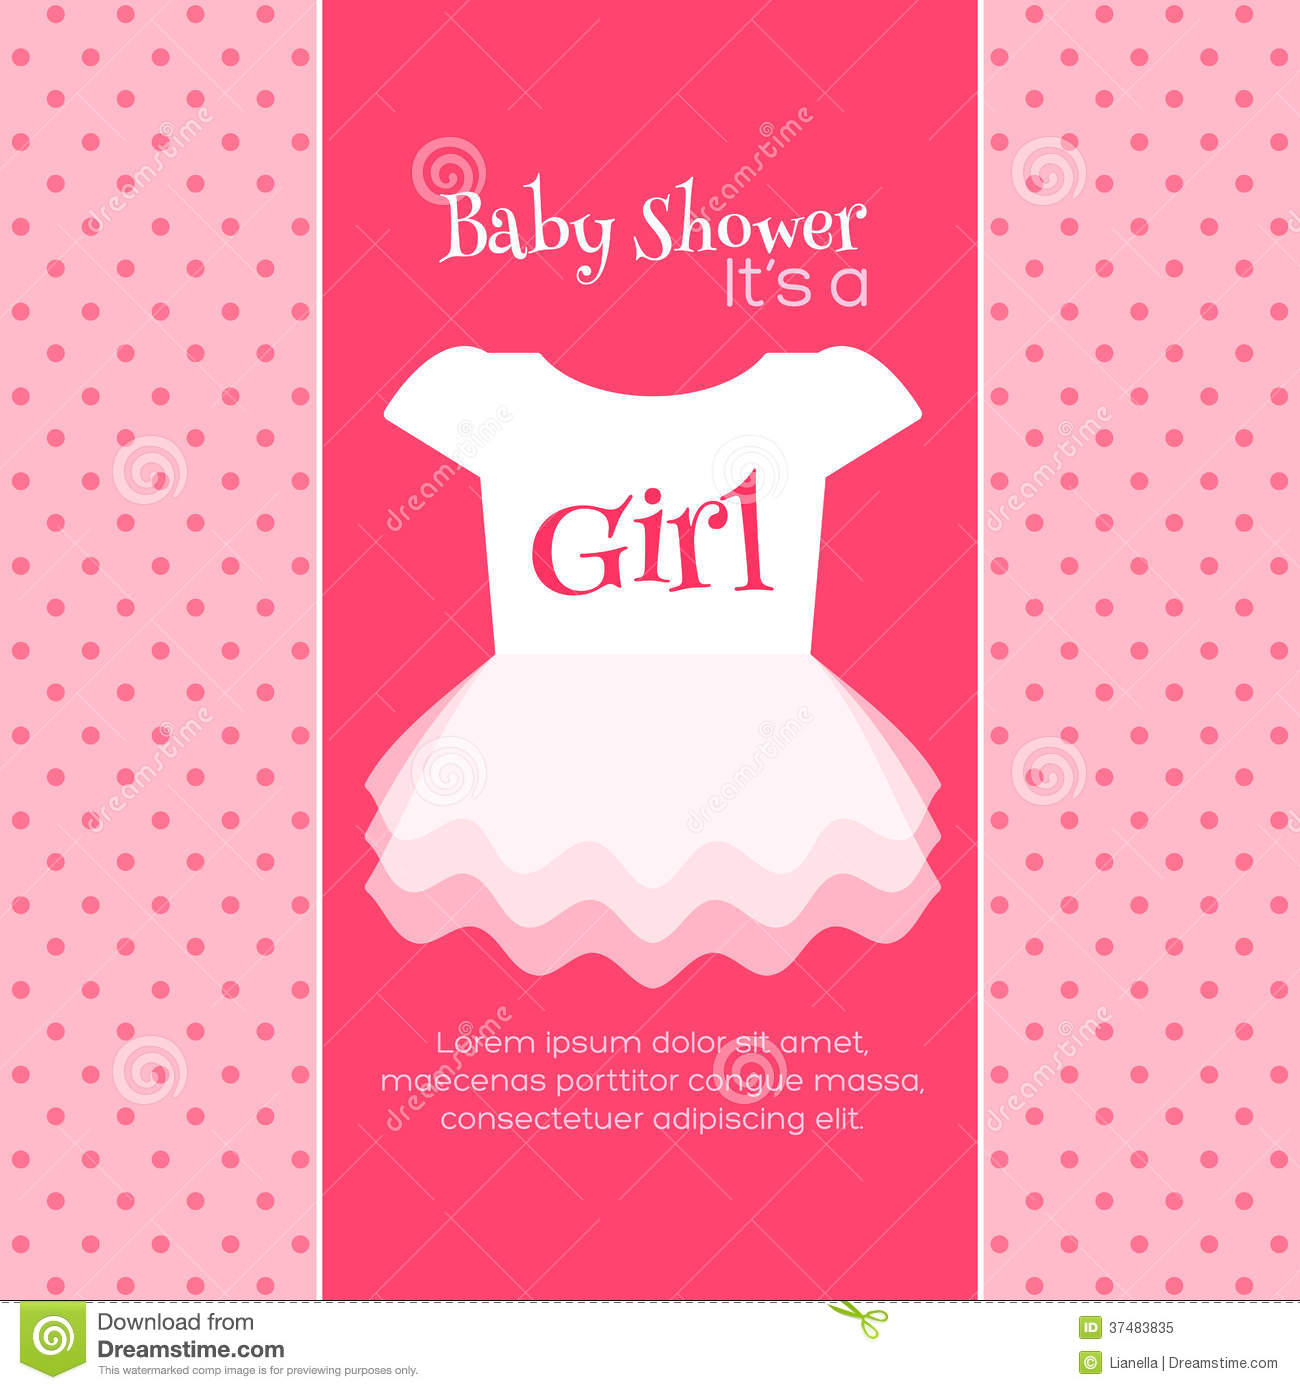 Baby shower invitation template stock illustration illustration of download baby shower invitation template stock illustration illustration of design announcement 37483835 filmwisefo